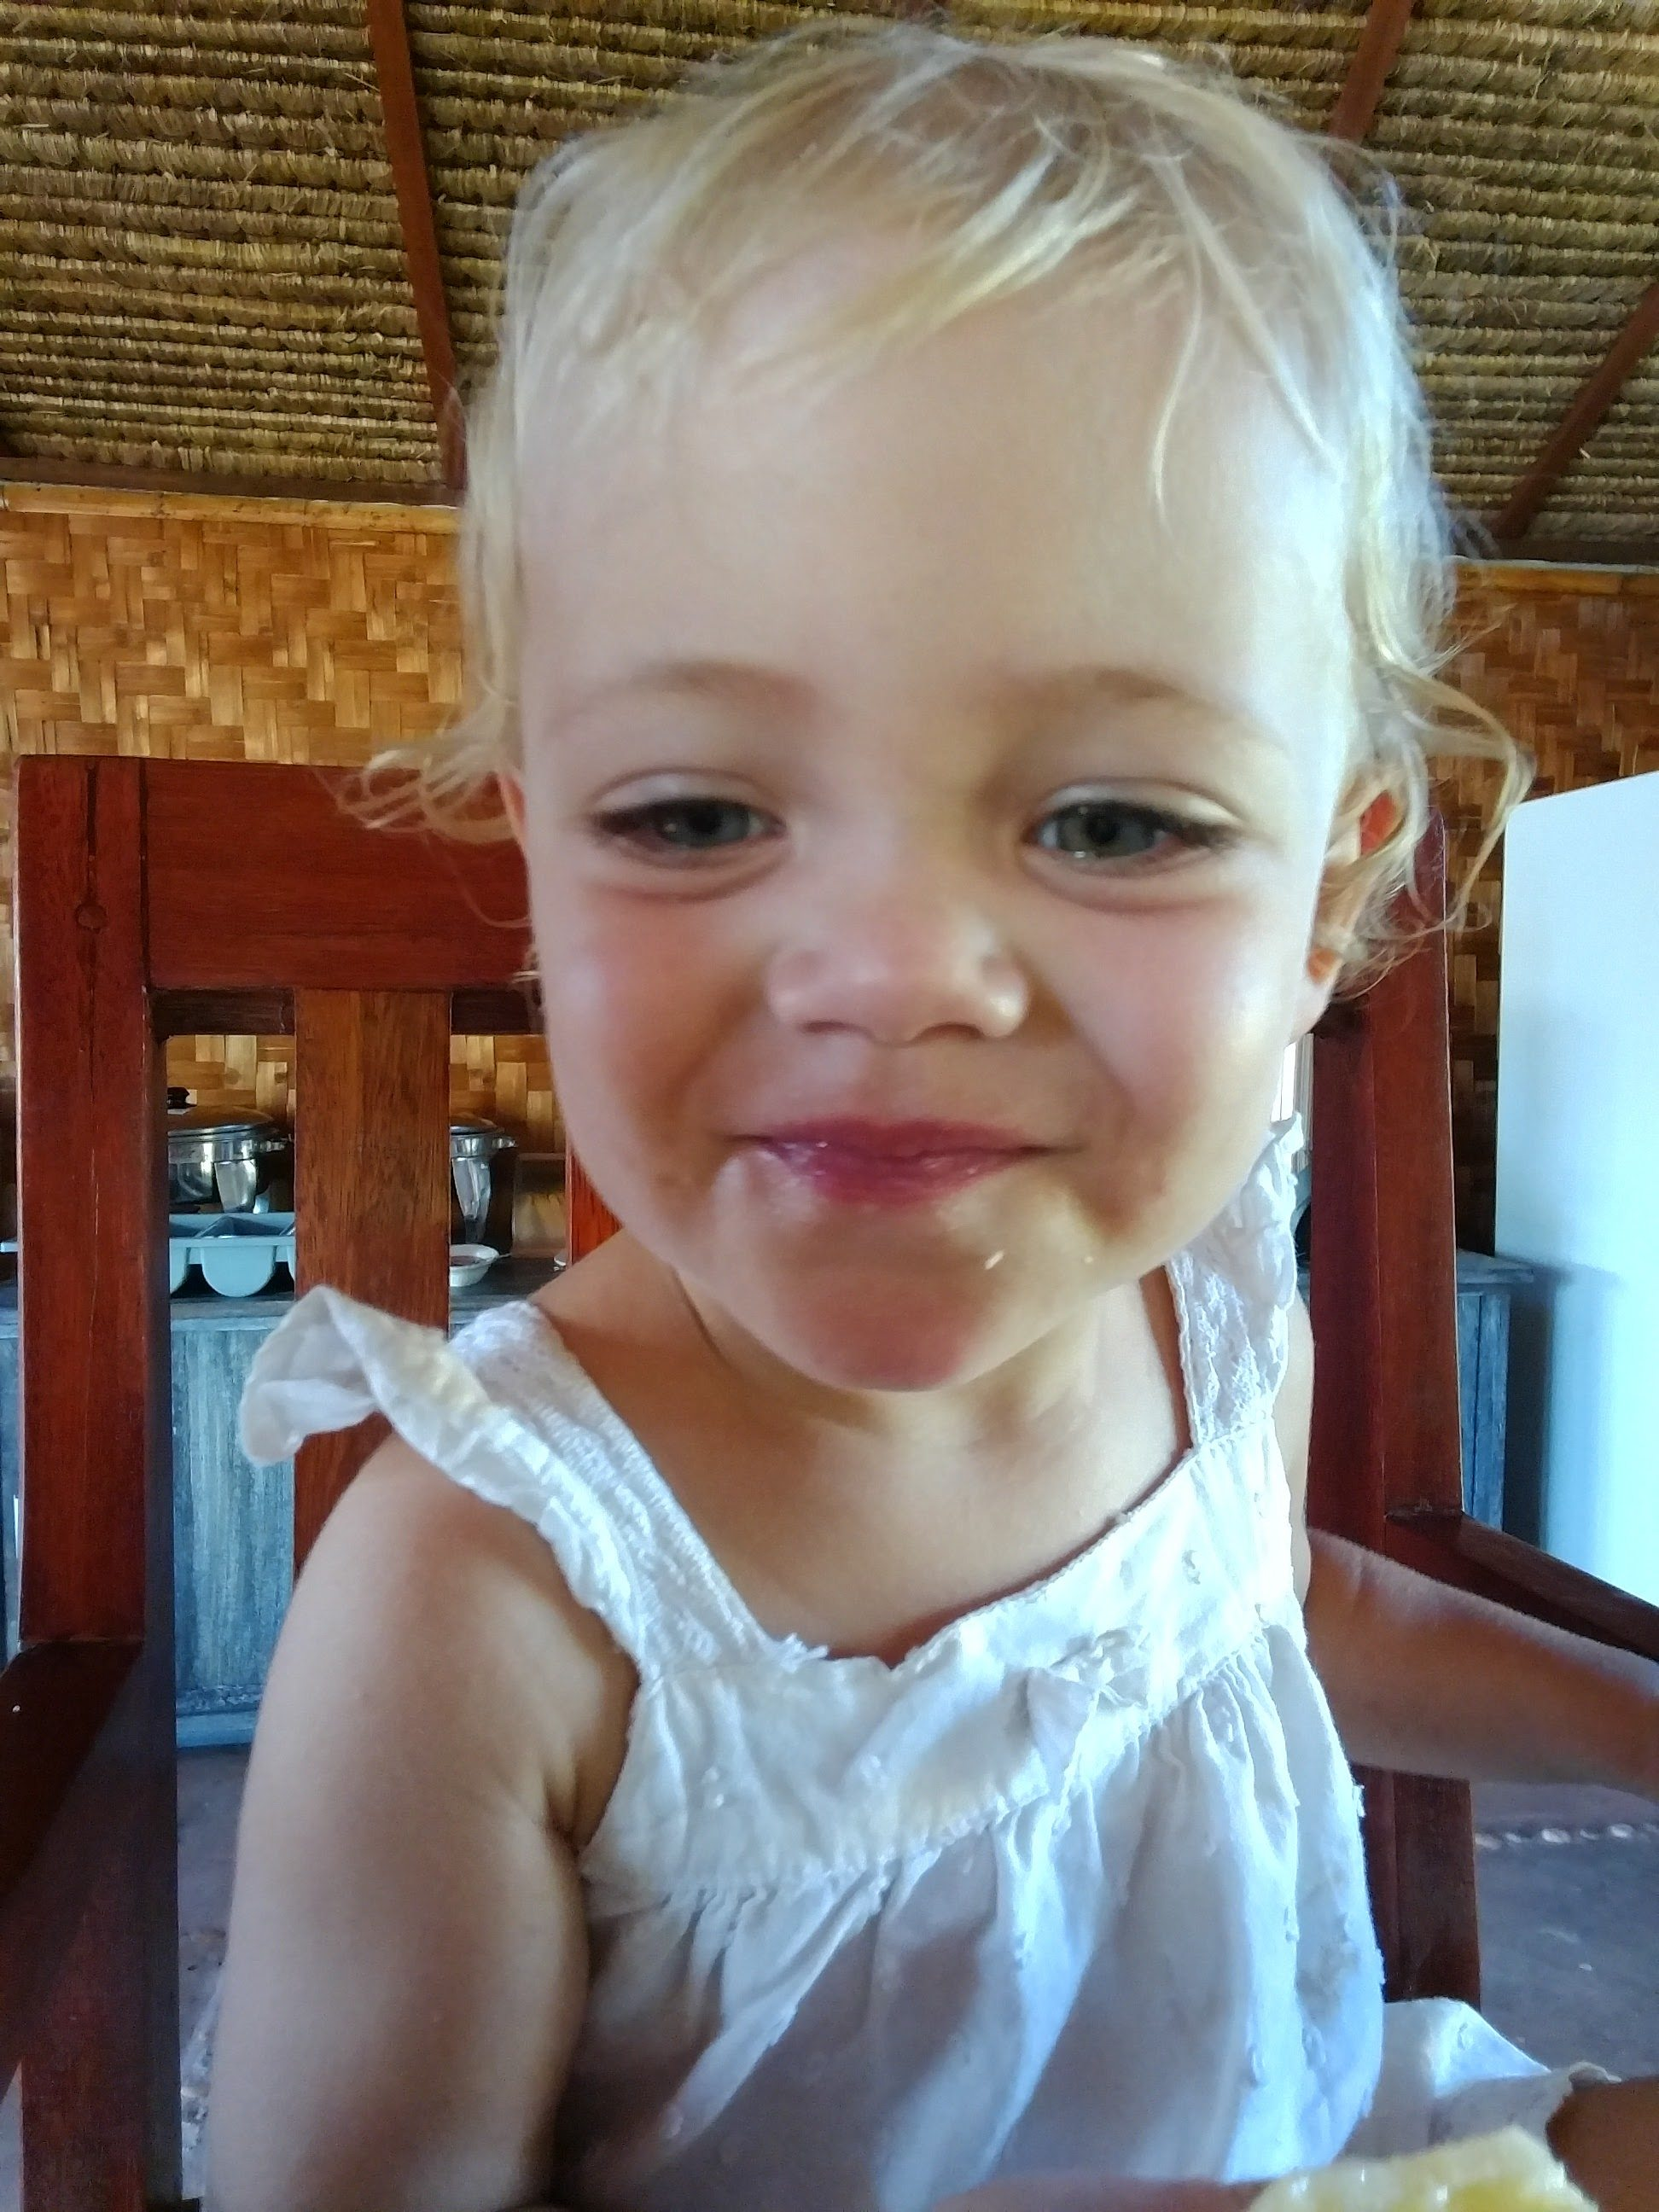 Chickenpox While Traveling with a Toddler